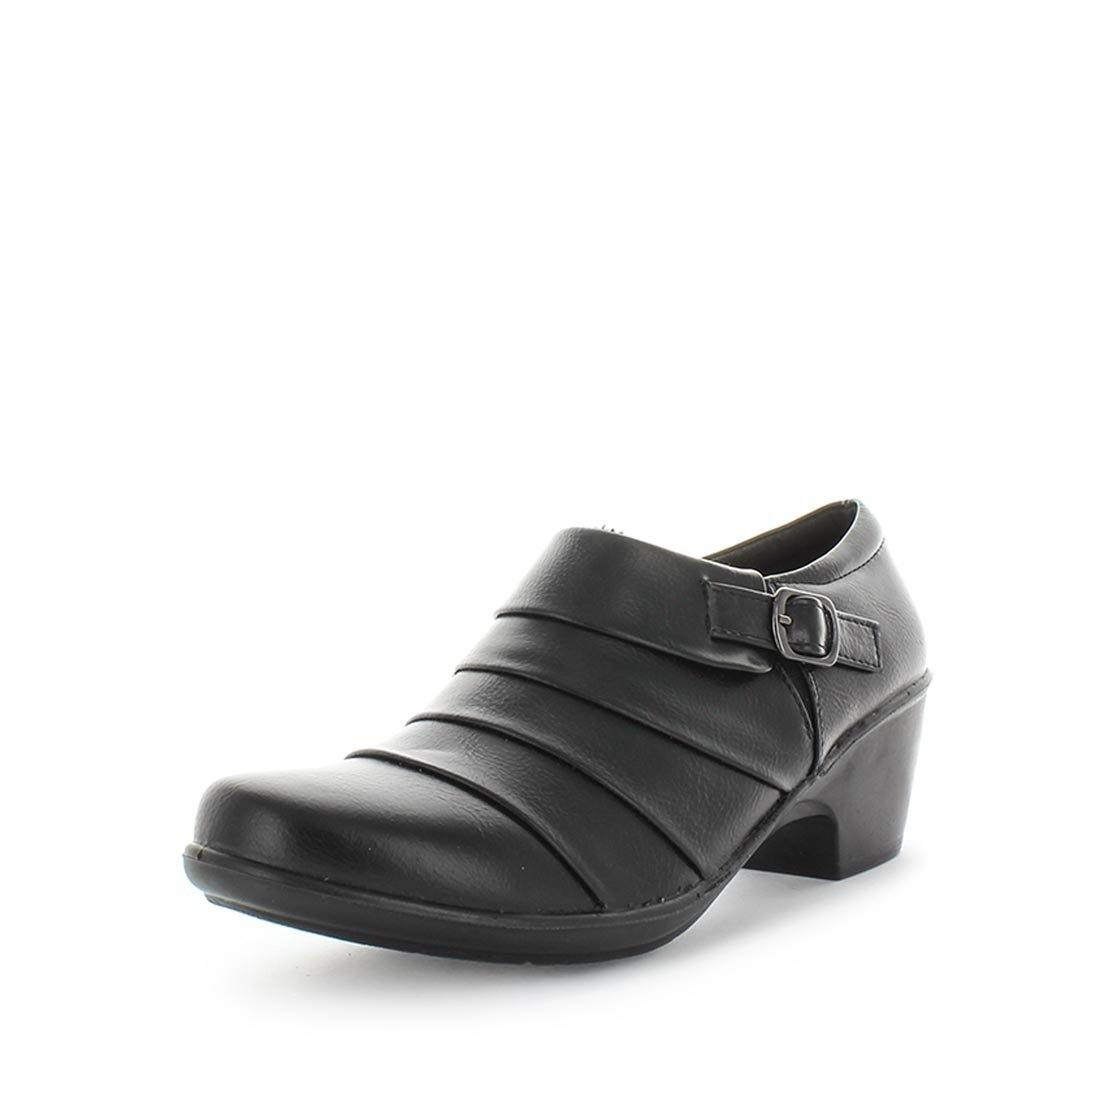 Mallari by aerocushion - Ishoes - comfort flats - comfort little heels - comfort women's shoes - women's flats - comfort flats - cute little black block heel flat with a side buckle and full inside zip with a memory foam padded footbed